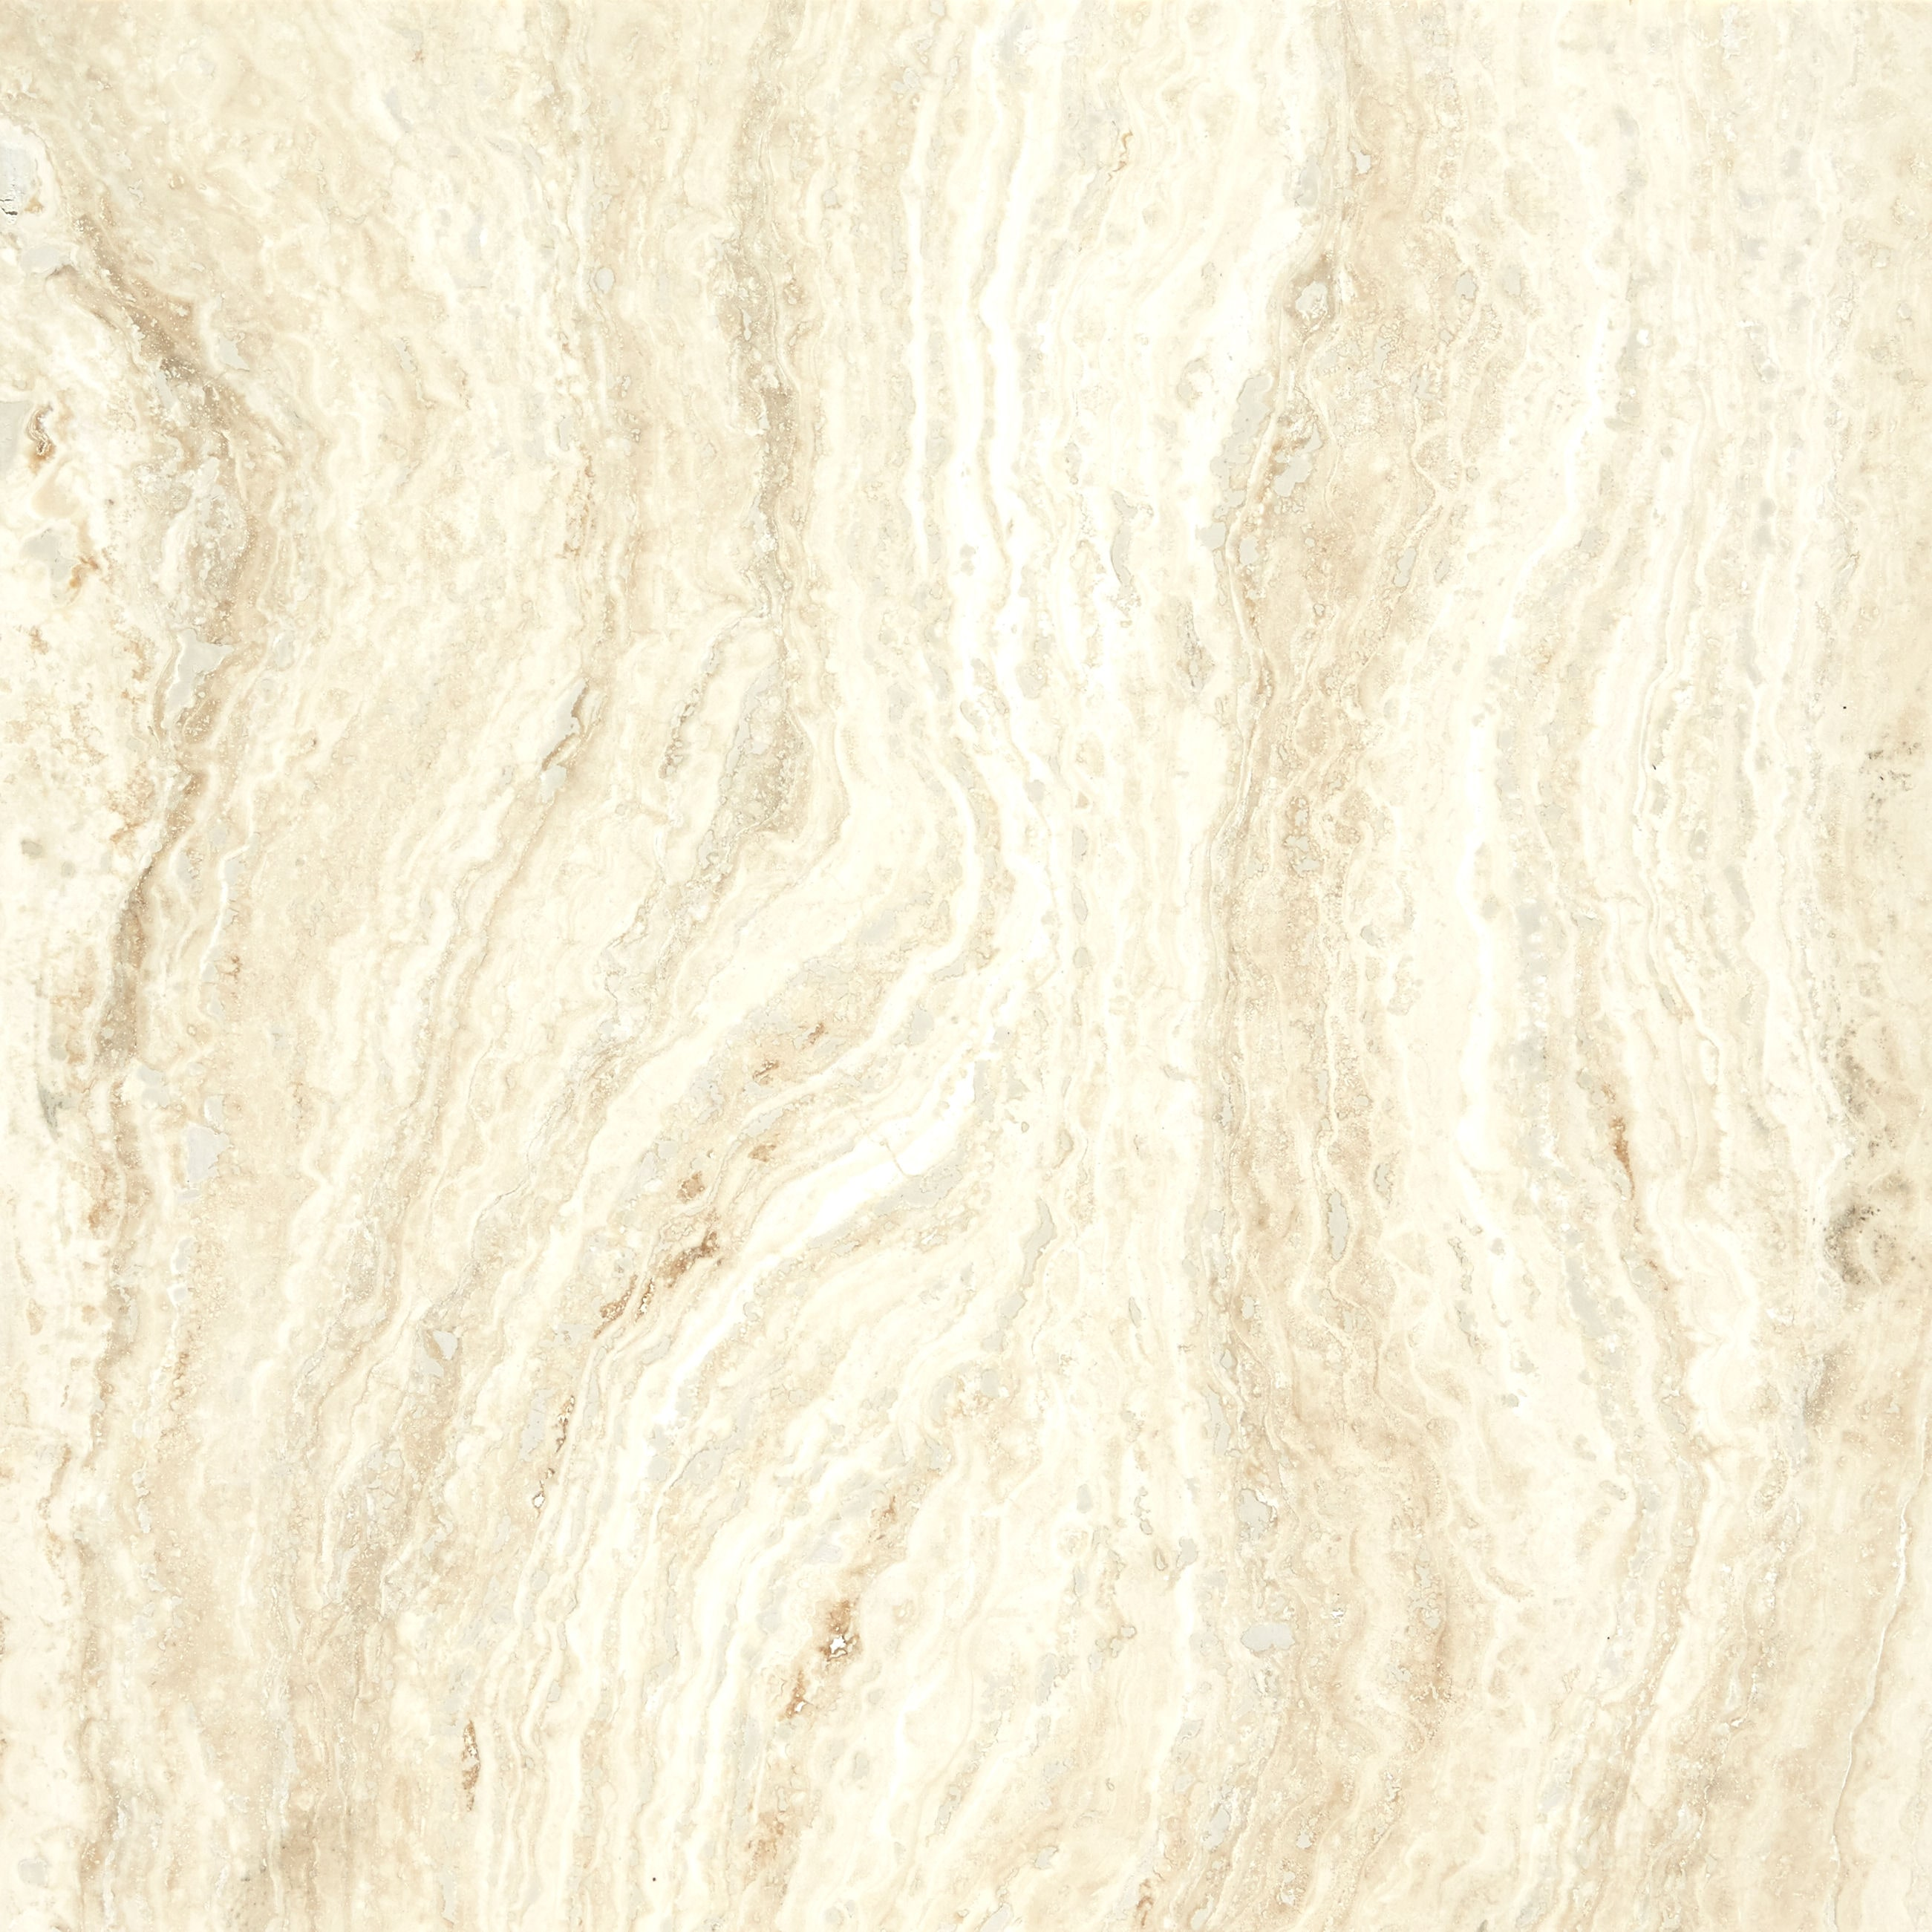 Alabastrino Rustic Honed Filled Travertine Tiles